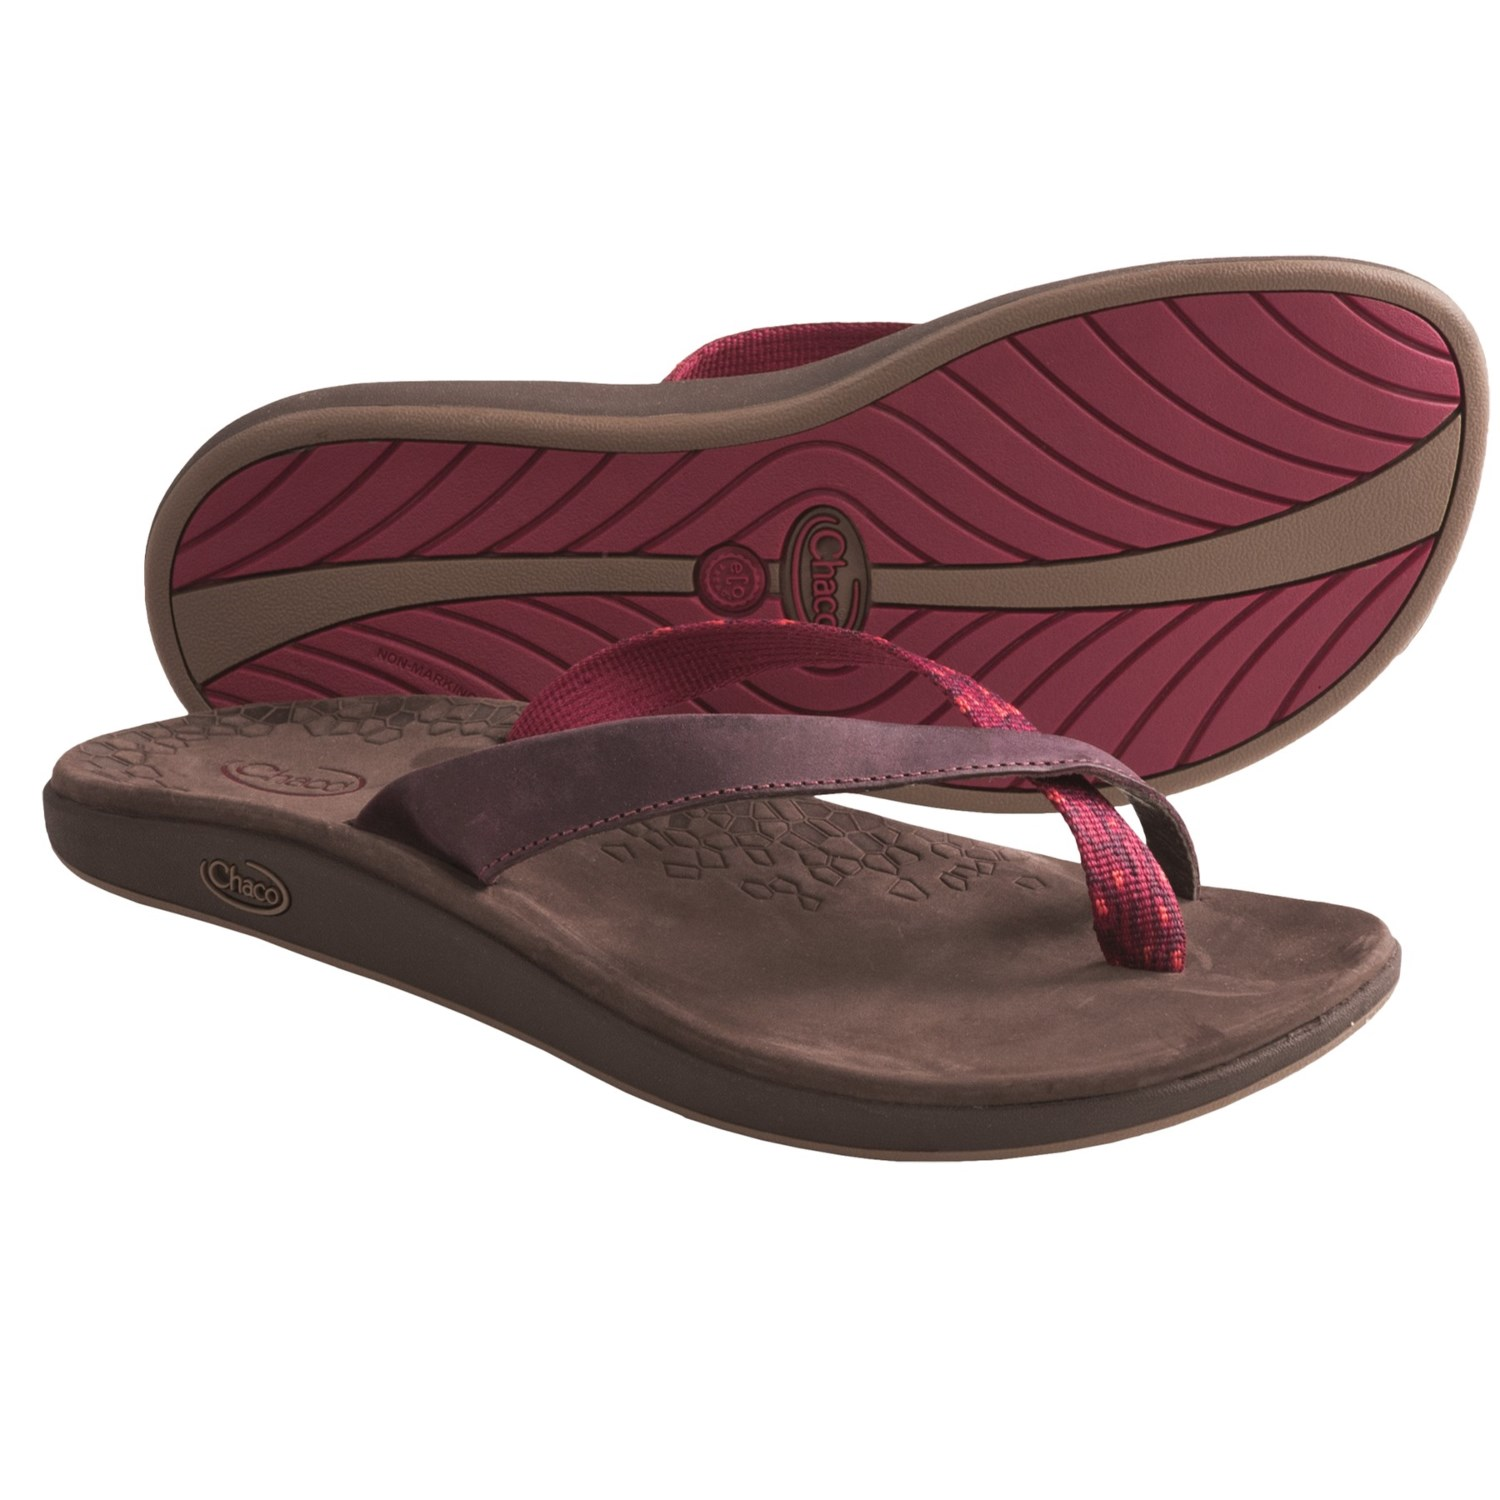 Popular  Chaco Sandals Zong X EcoTread Sandal Women39s 6 BC W US Multi Red